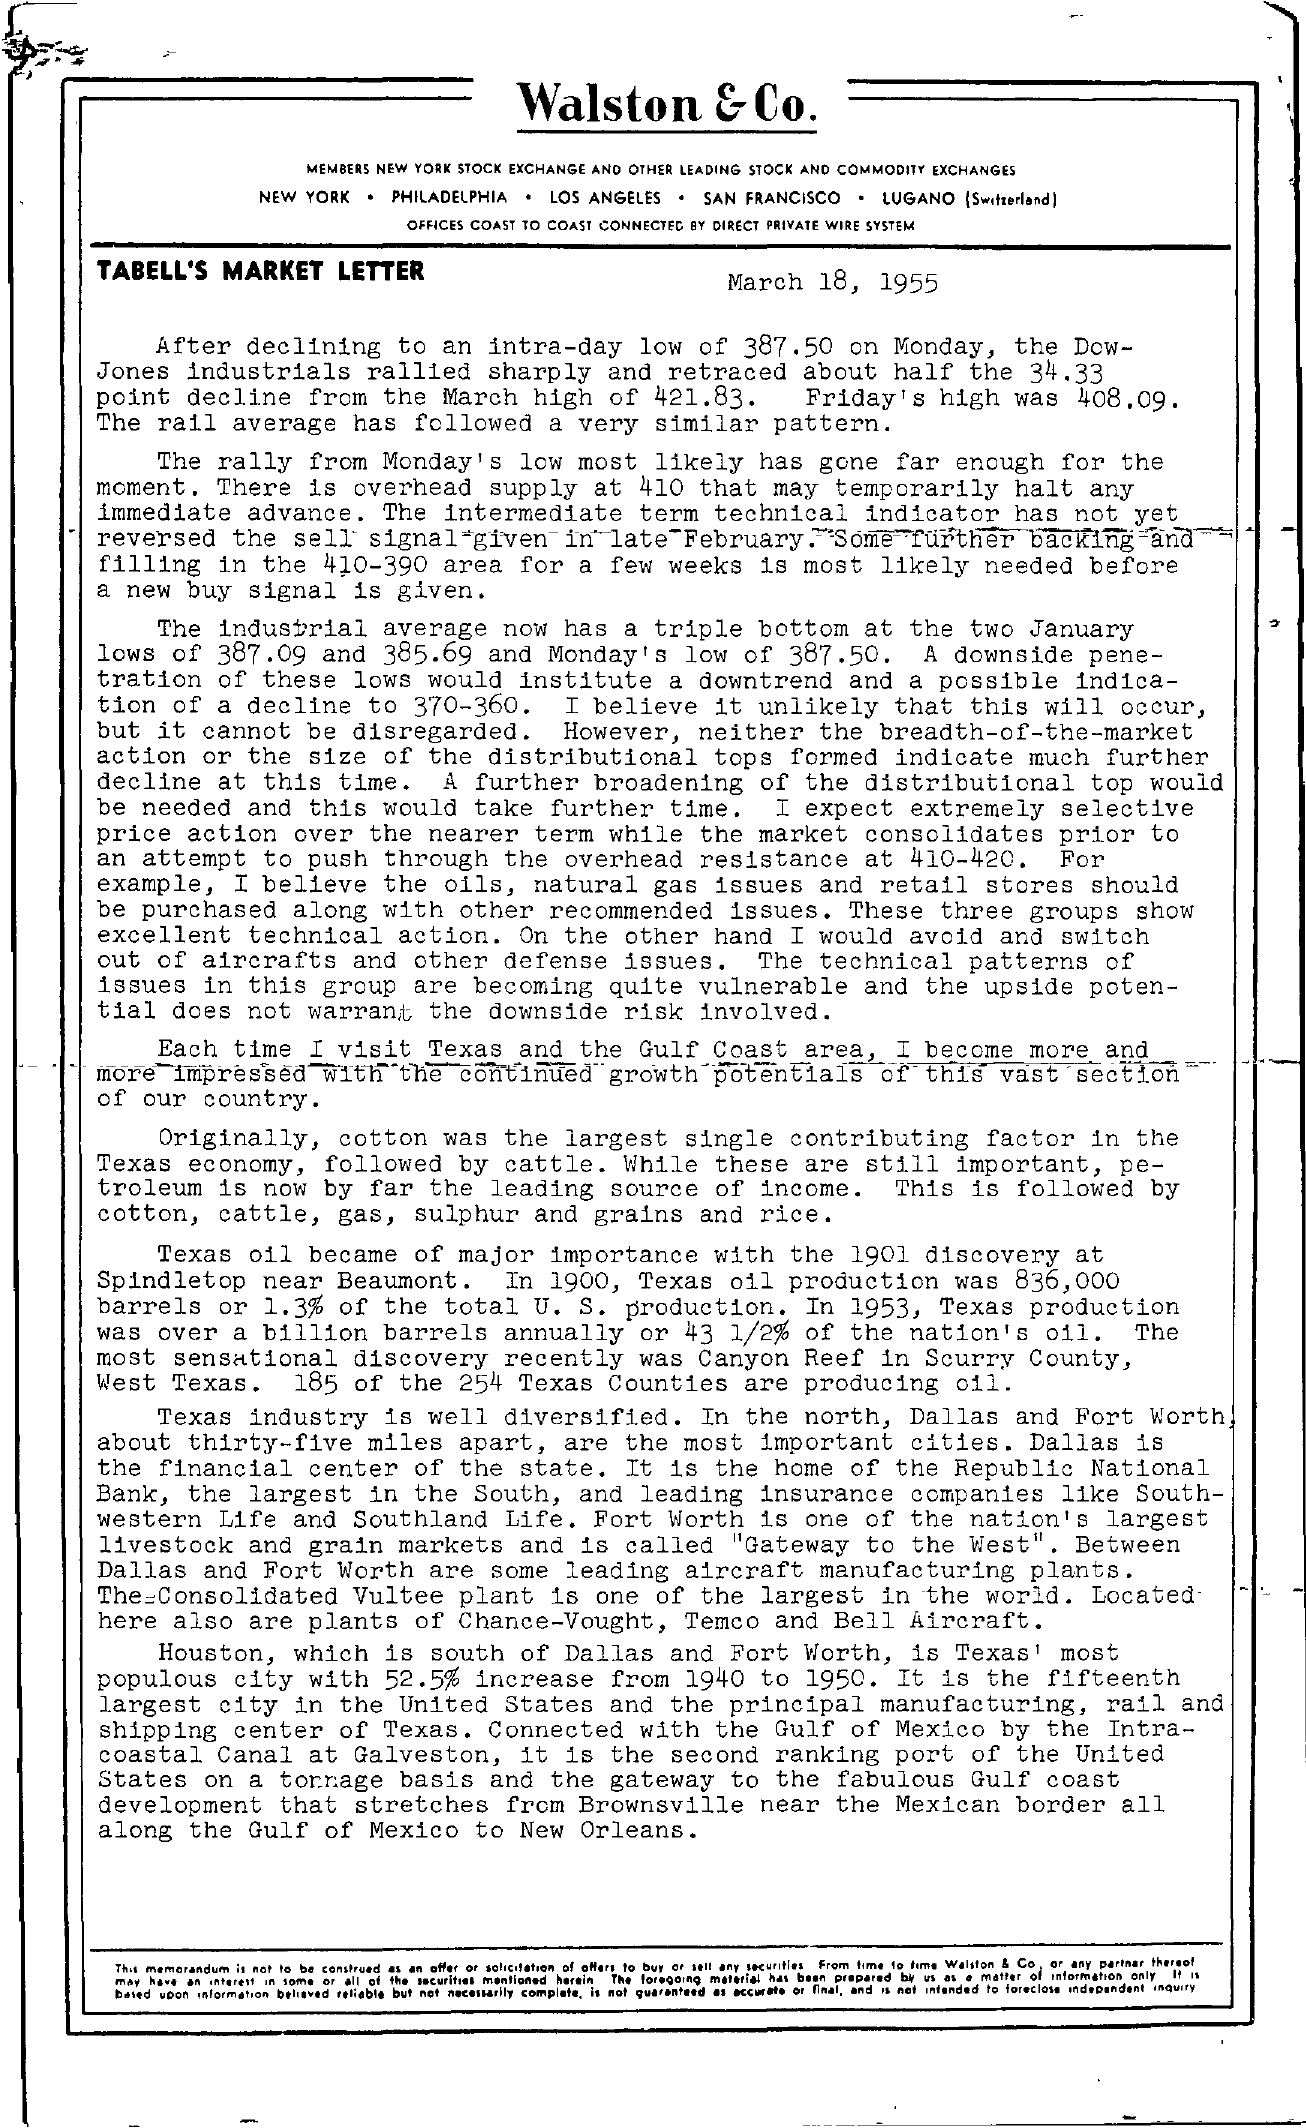 Tabell's Market Letter - March 18, 1955 page 1